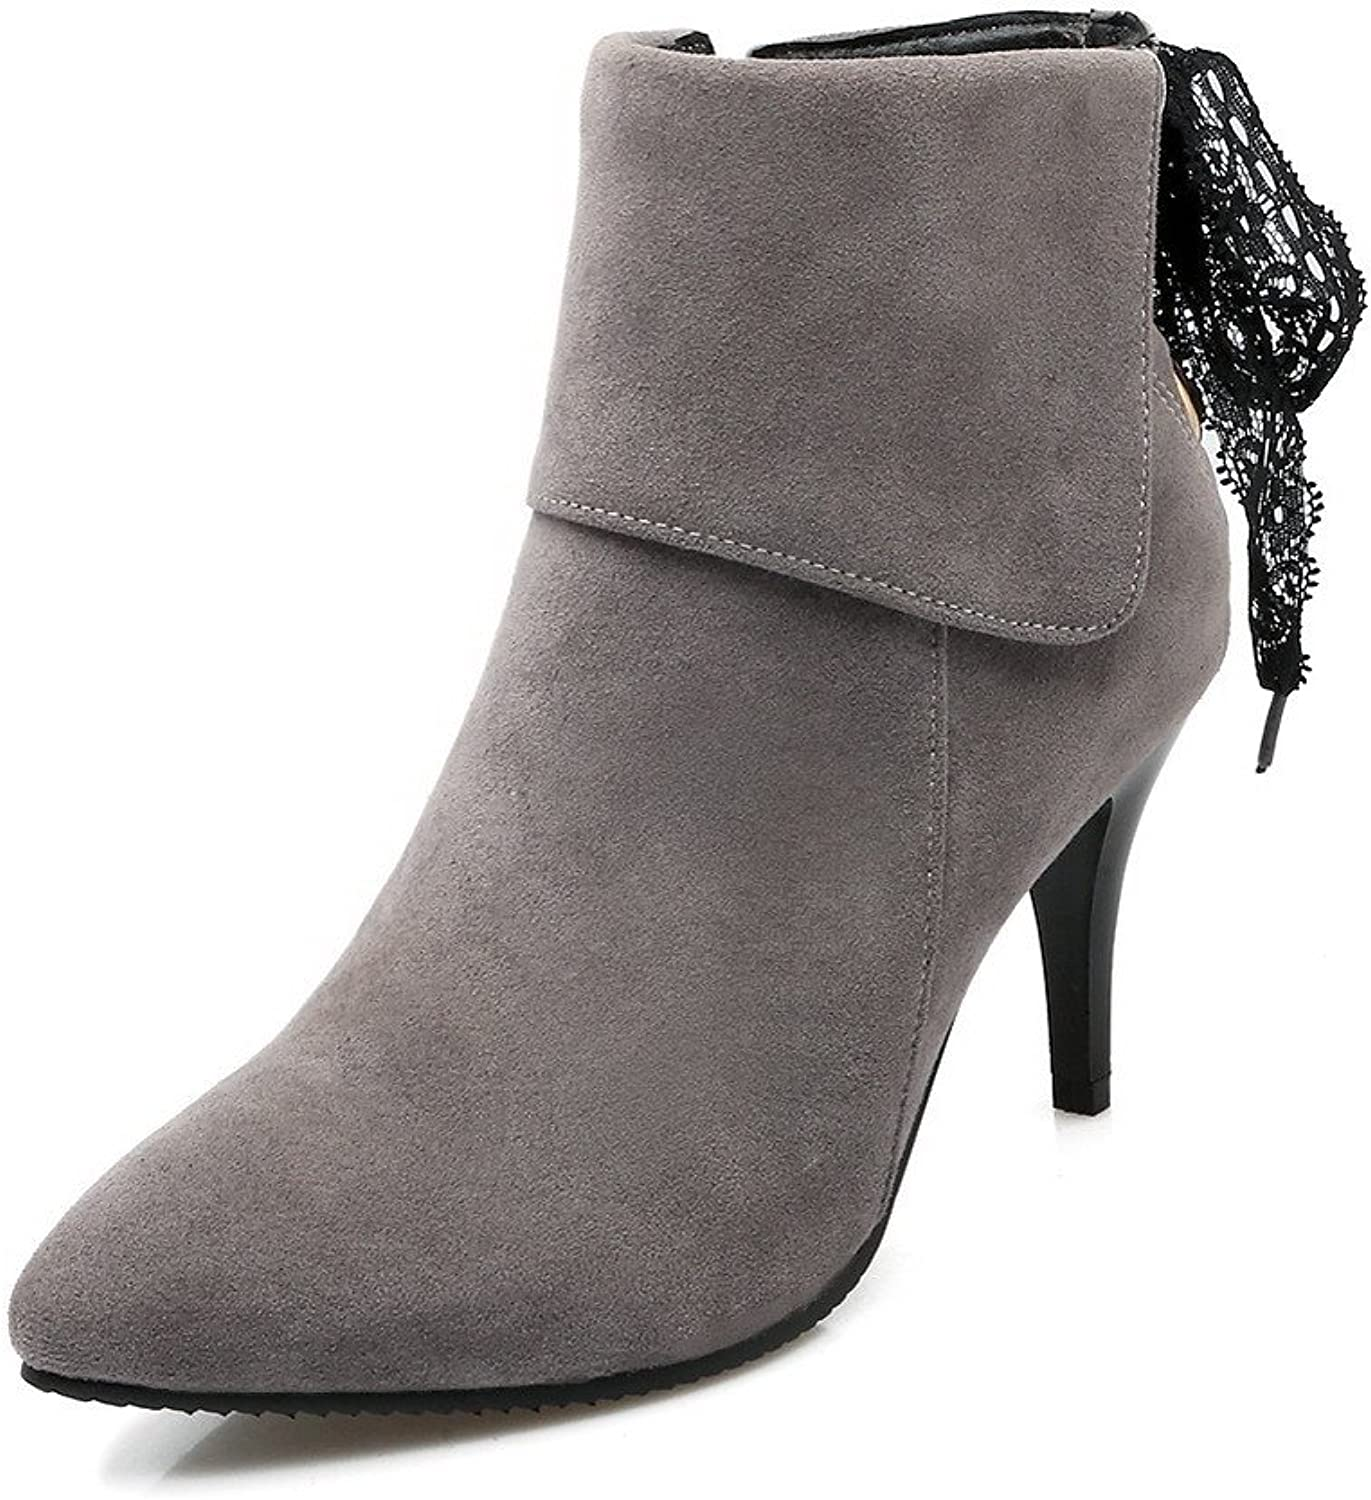 WeiPoot Women's Frosted Zipper Pointed Closed Toe High-Heels Low-top Boots